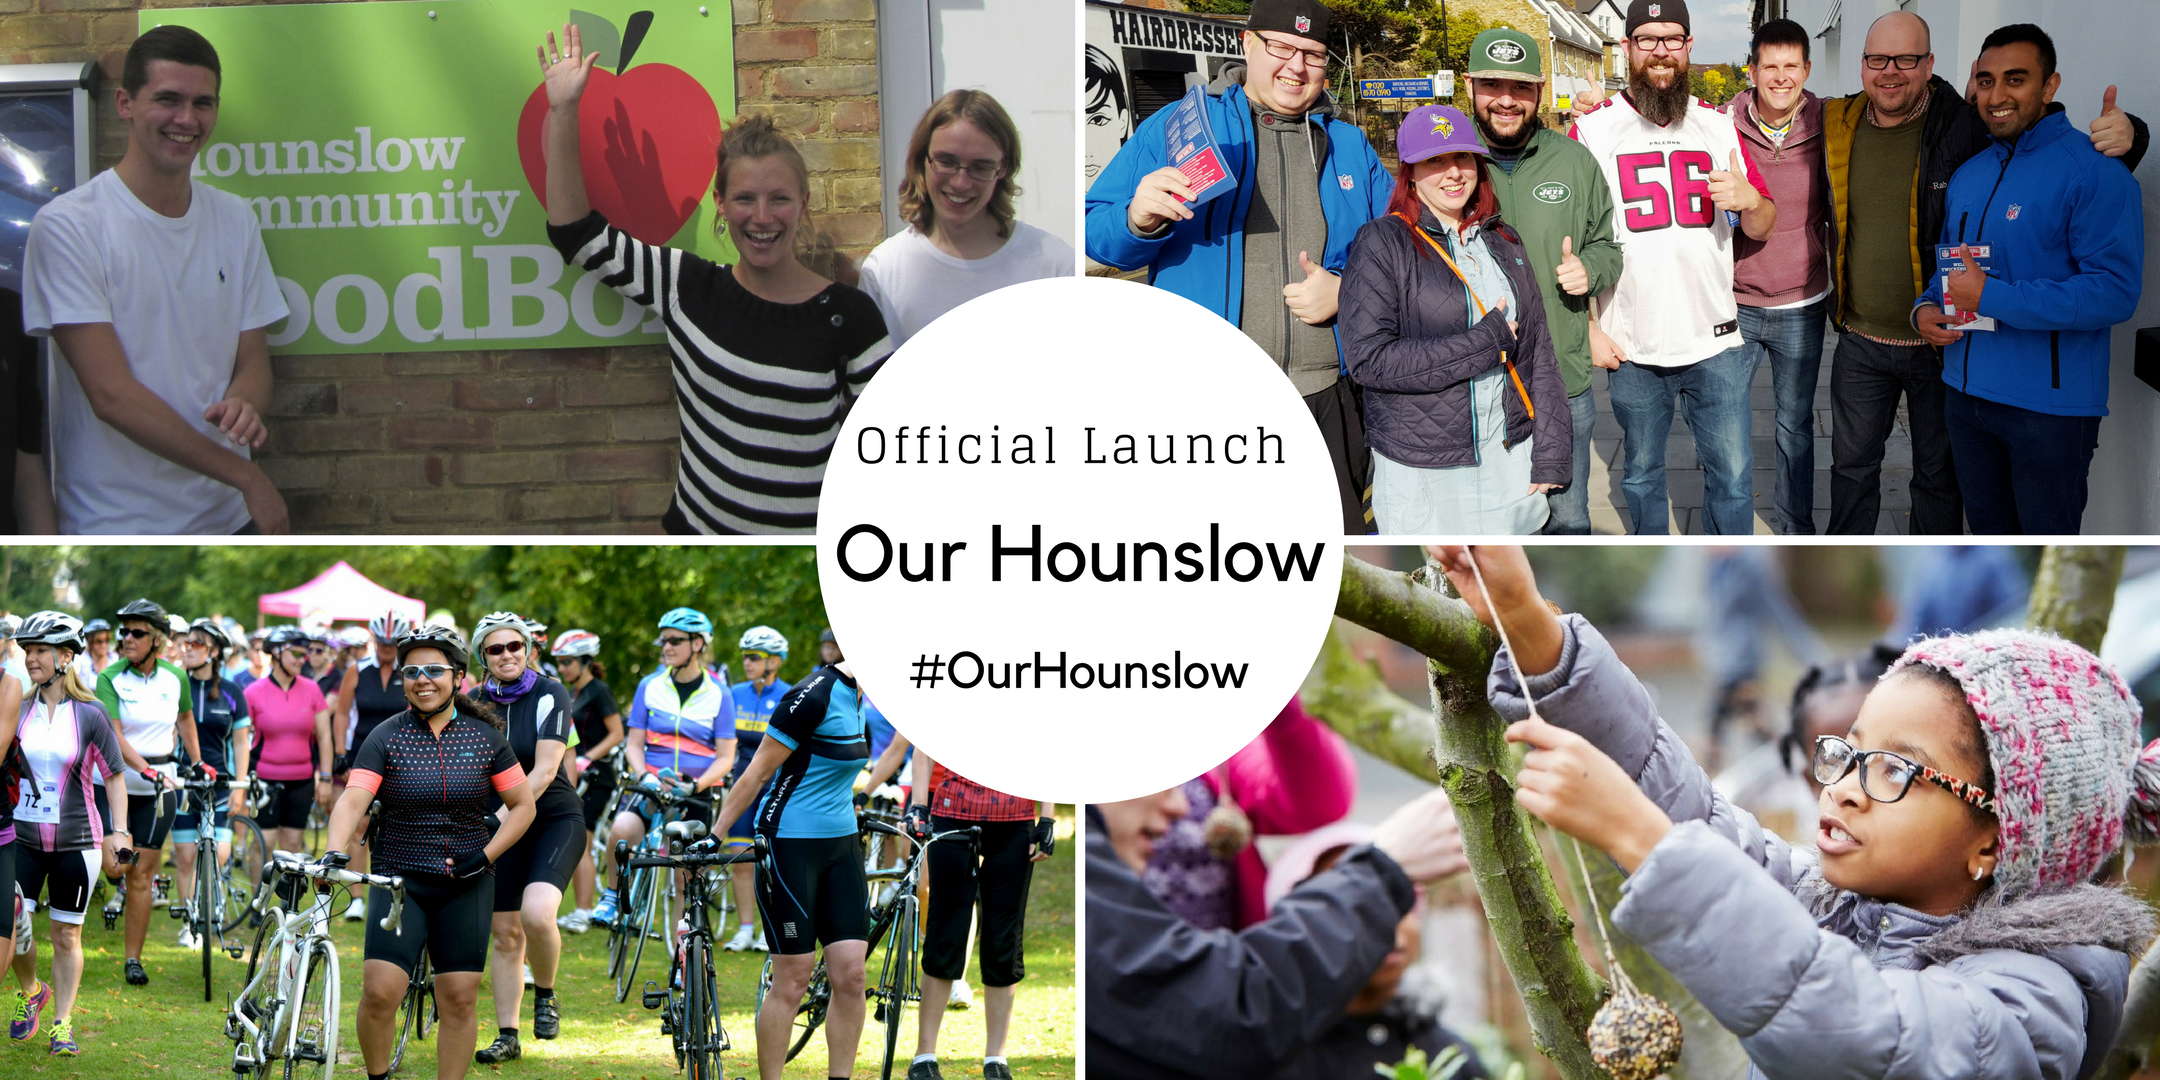 Introducing Our Hounslow - Launch Event